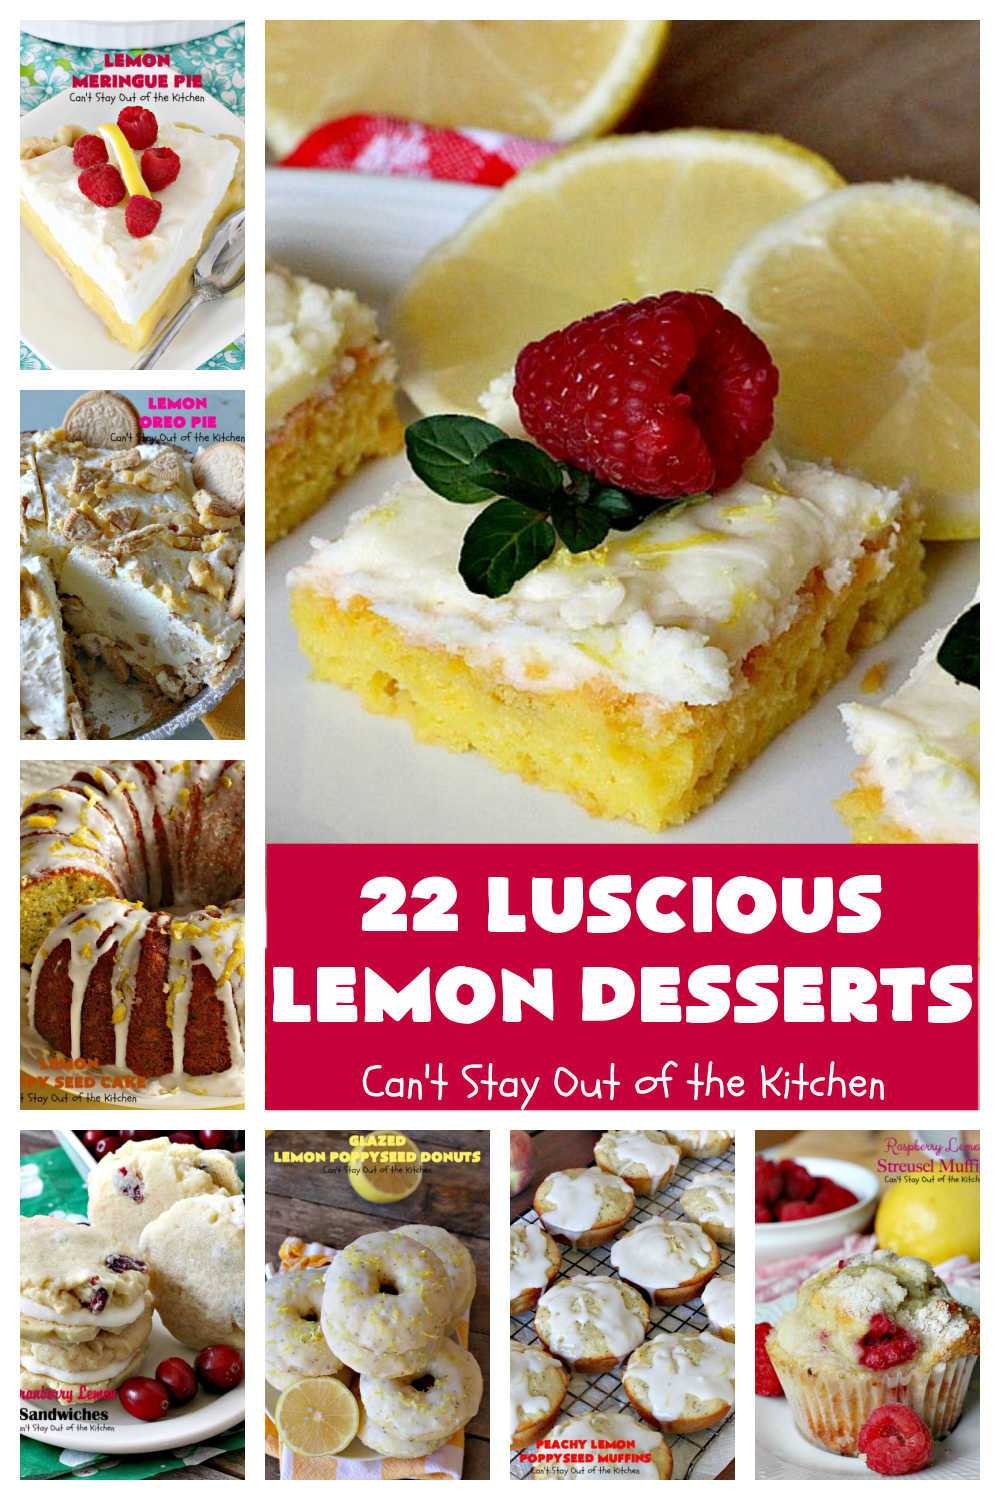 22 Luscious Lemon Desserts   Can't Stay Out of the Kitchen   22 fabulous #lemon flavored #desserts & #muffin #recipes. Includes #pies, #cakes, #cookies & #blondies. If you have a lemon sweet tooth, these terrific desserts are for you!